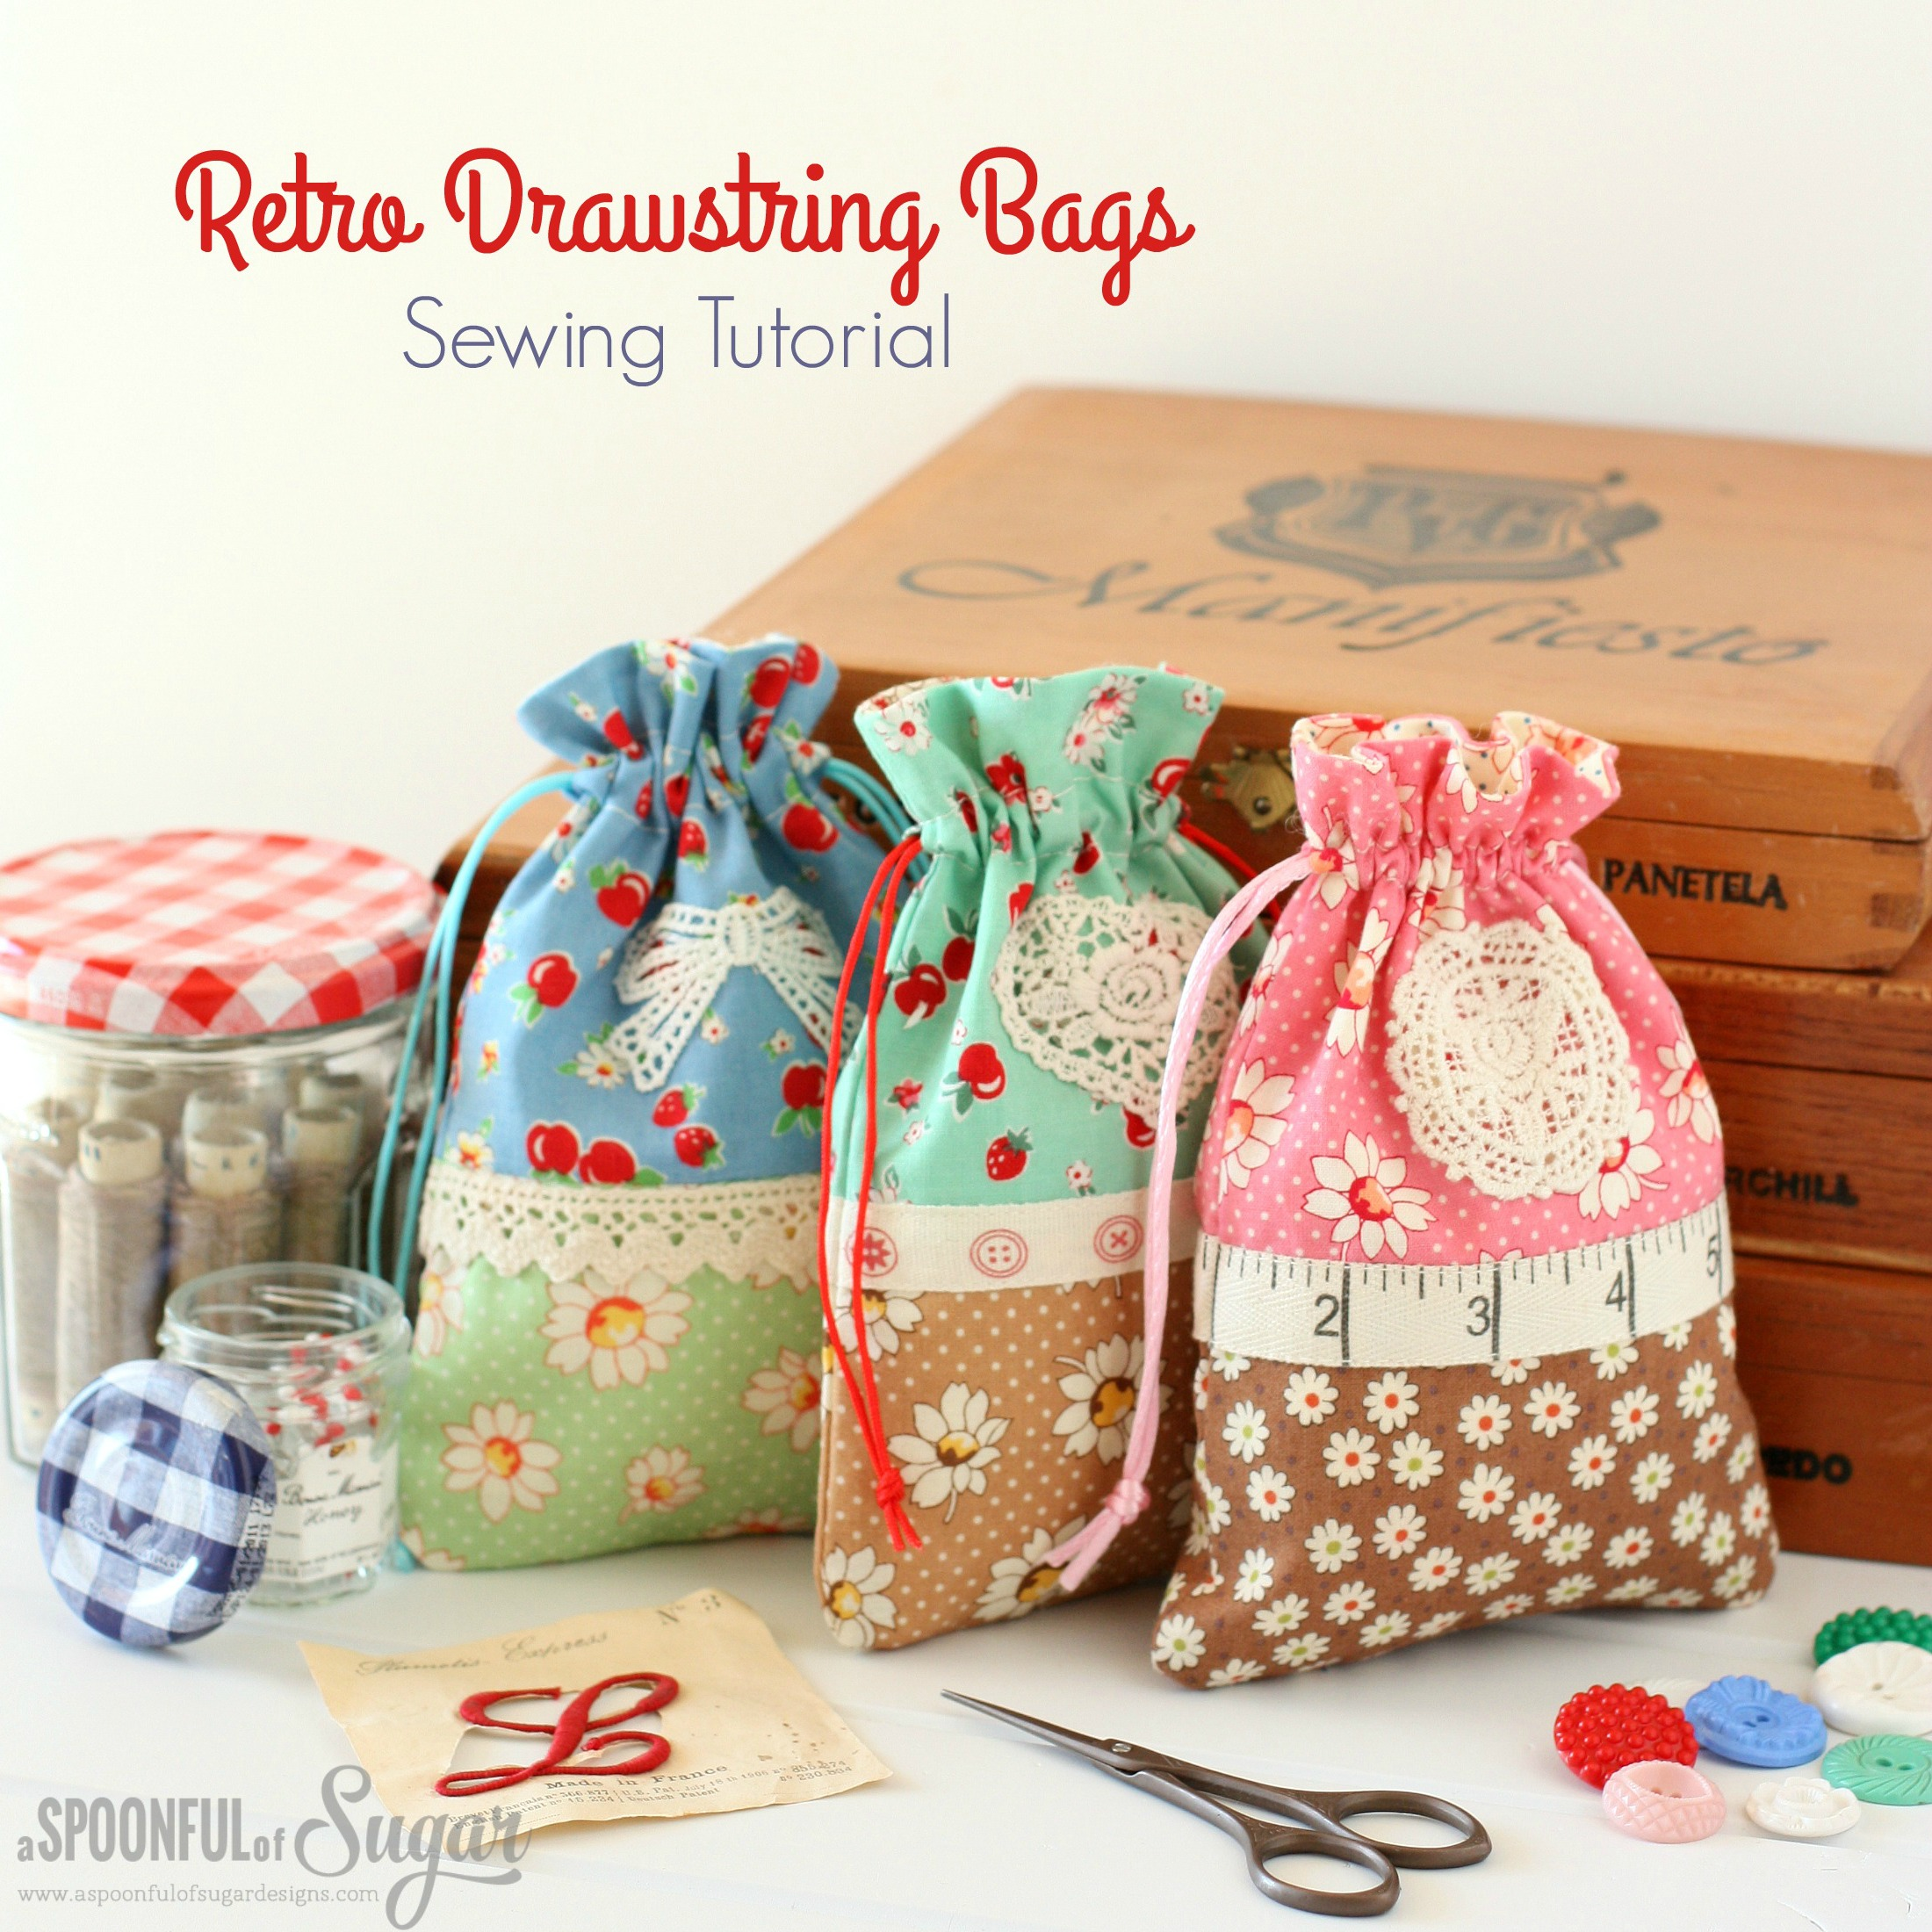 Retro Drawstring Bags - Top Sewing Tutorials from 2016 - A Spoonful of Sugar - www.aspoonfulofsugardesigns.com